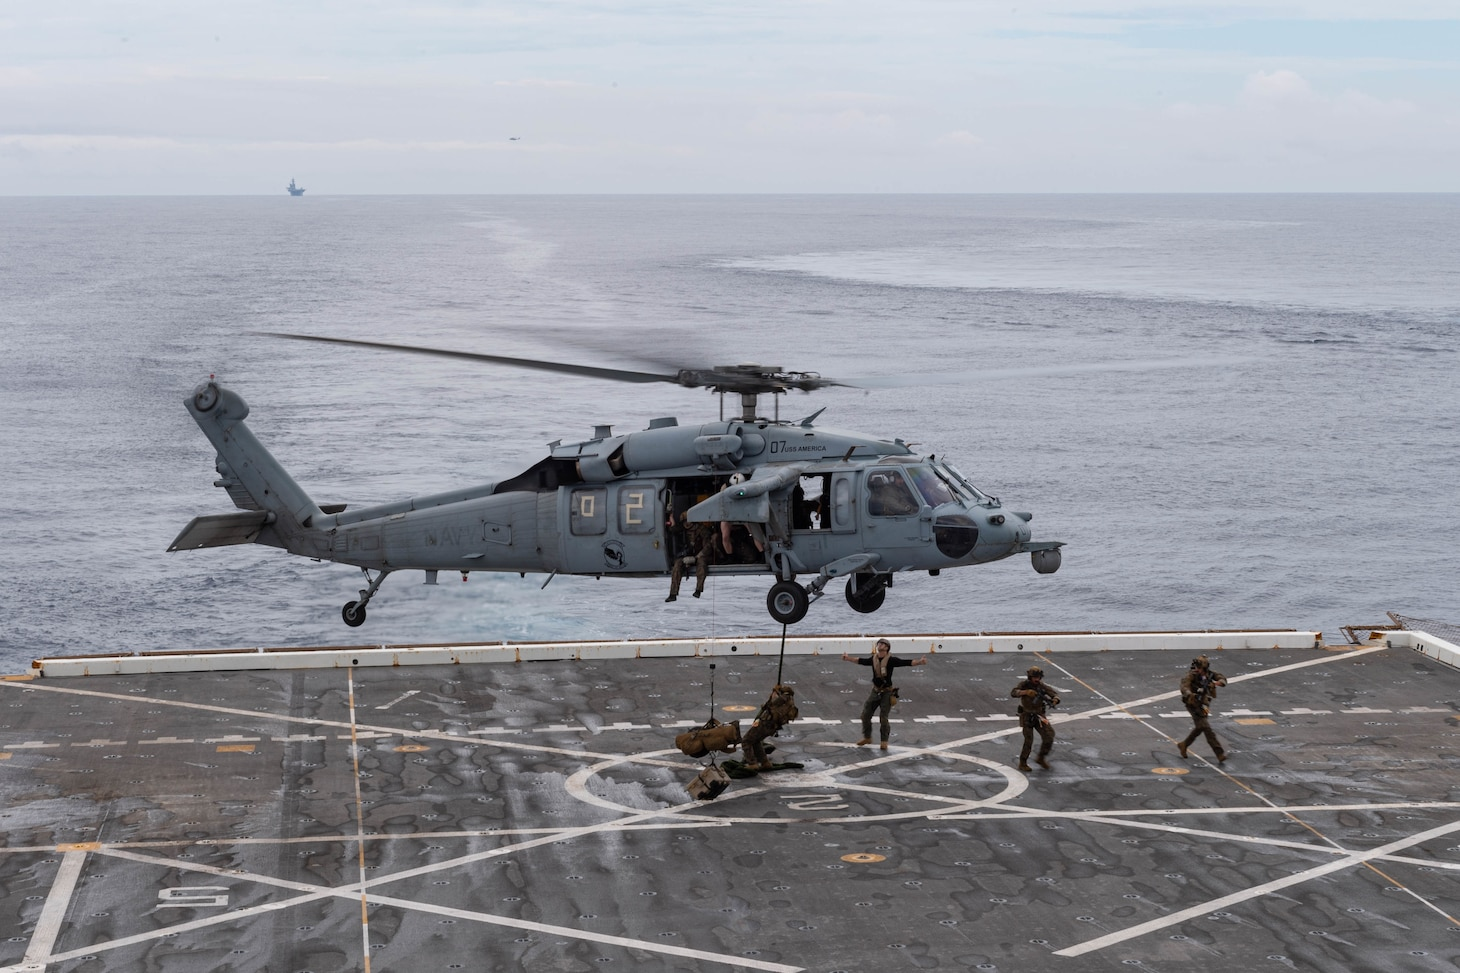 210614-N-XB010-1015 EAST CHINA SEA (June 14, 2021) Marines attached to the 31st Marine Expeditionary Unit (MEU) fast rope from a Marine Corps MH-60S: Sea Hawk from the 31st MEU on USS New Orleans's (LPD 18) flight deck during a Maritime Raid Force training evolution with USS Germantown (LSD 42). New Orleans, part of the America Amphibious Ready Group, along with the 31st Marine Expeditionary Unit, is operating in the U.S. 7th Fleet area of responsibility to enhance interoperability with allies and partners and serve as a ready response force to defend peace and stability in the Indo-Pacific region. (U.S. Navy photo by Mass Communication Specialist 2nd Class Desmond Parks)